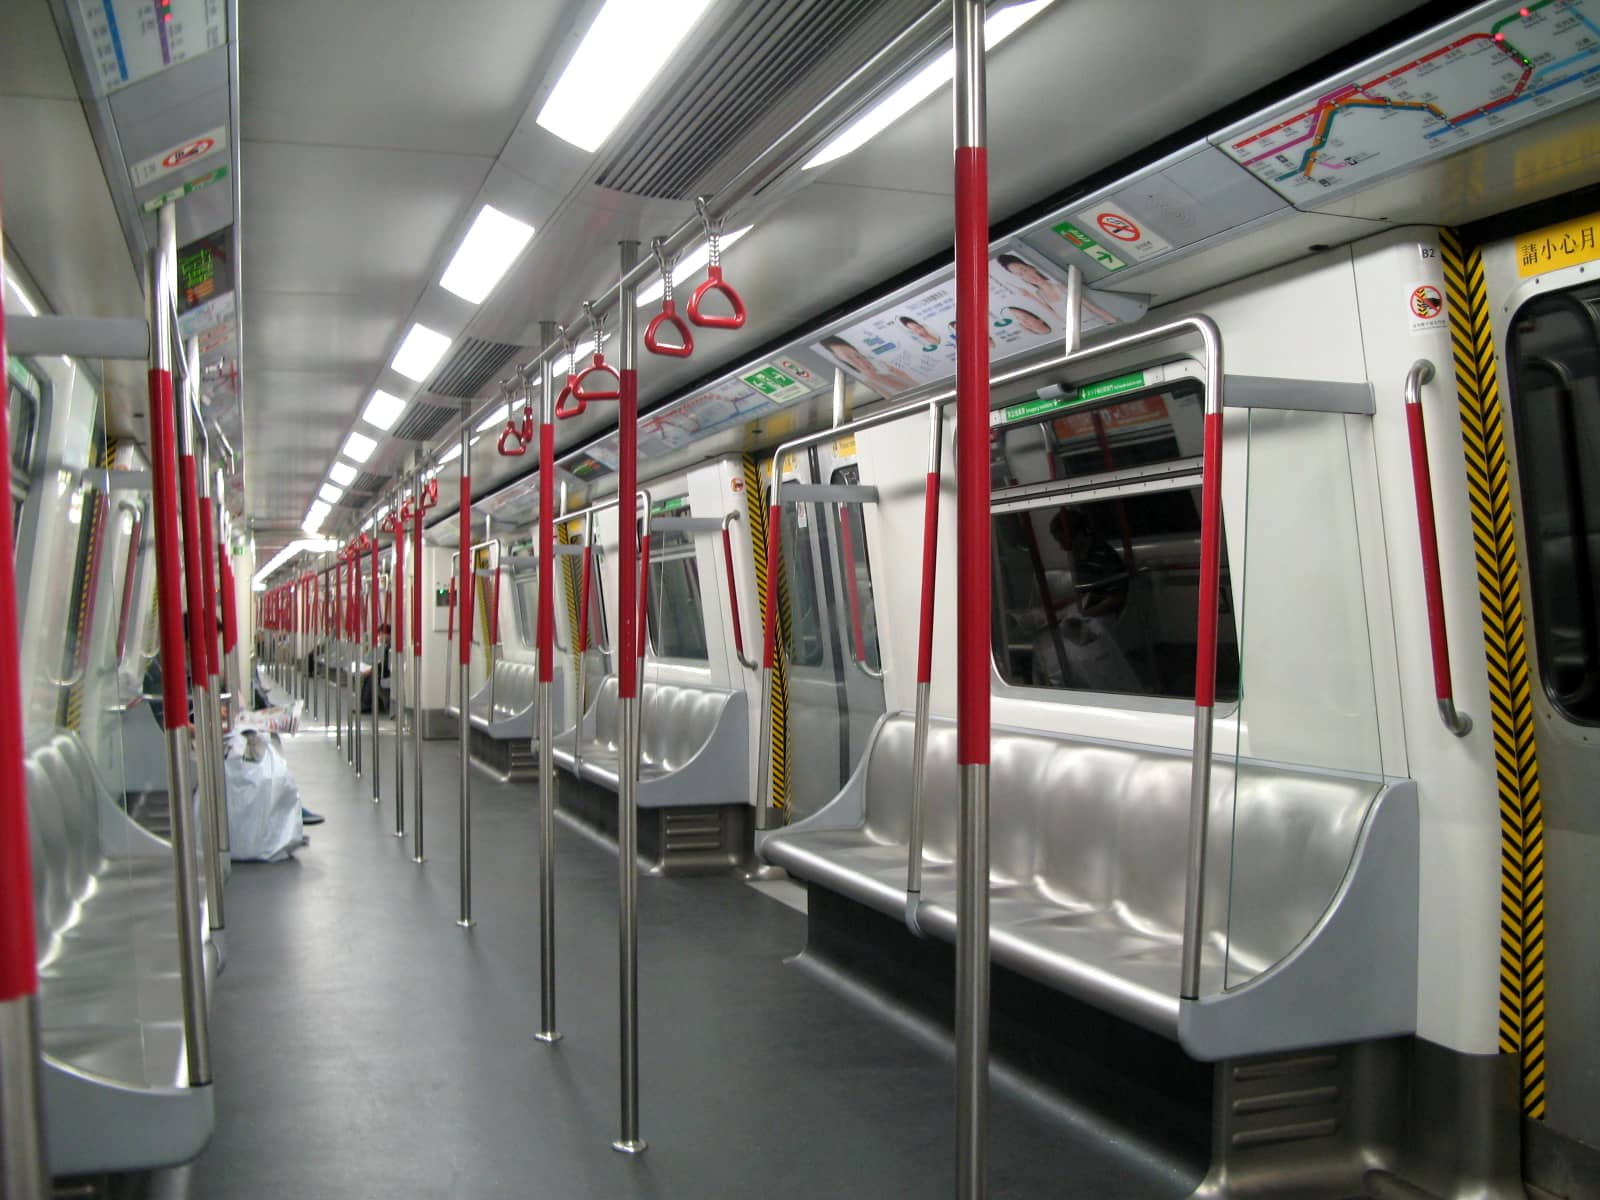 trains interior